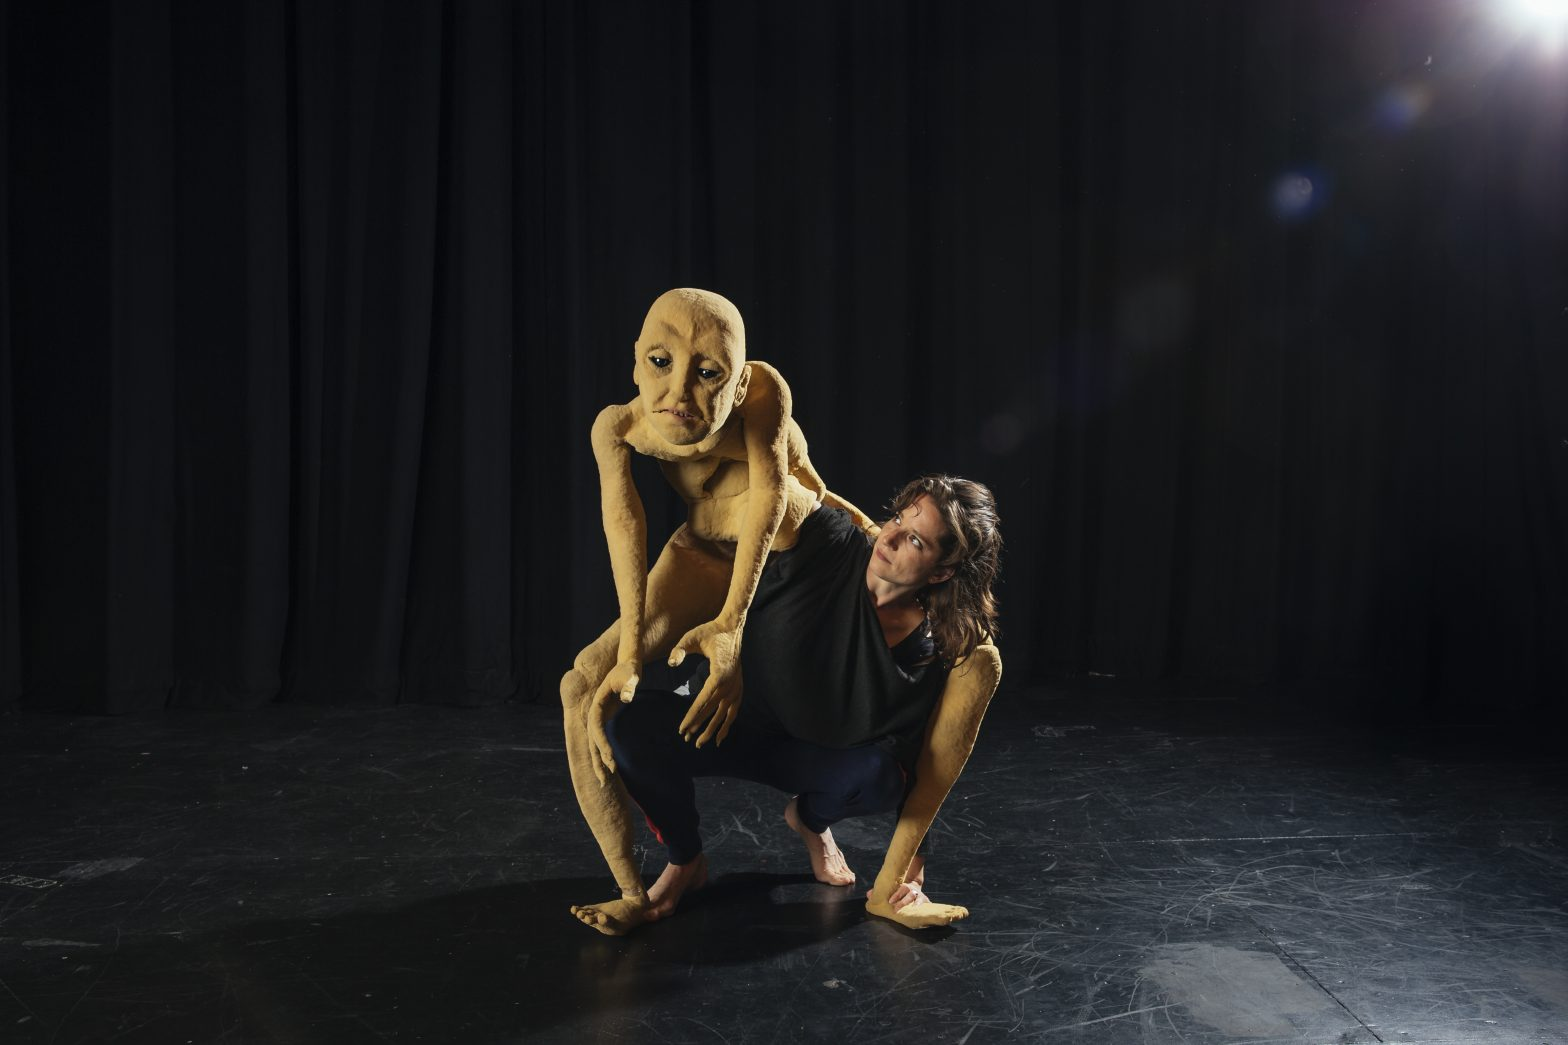 Woman on stage with human puppet.